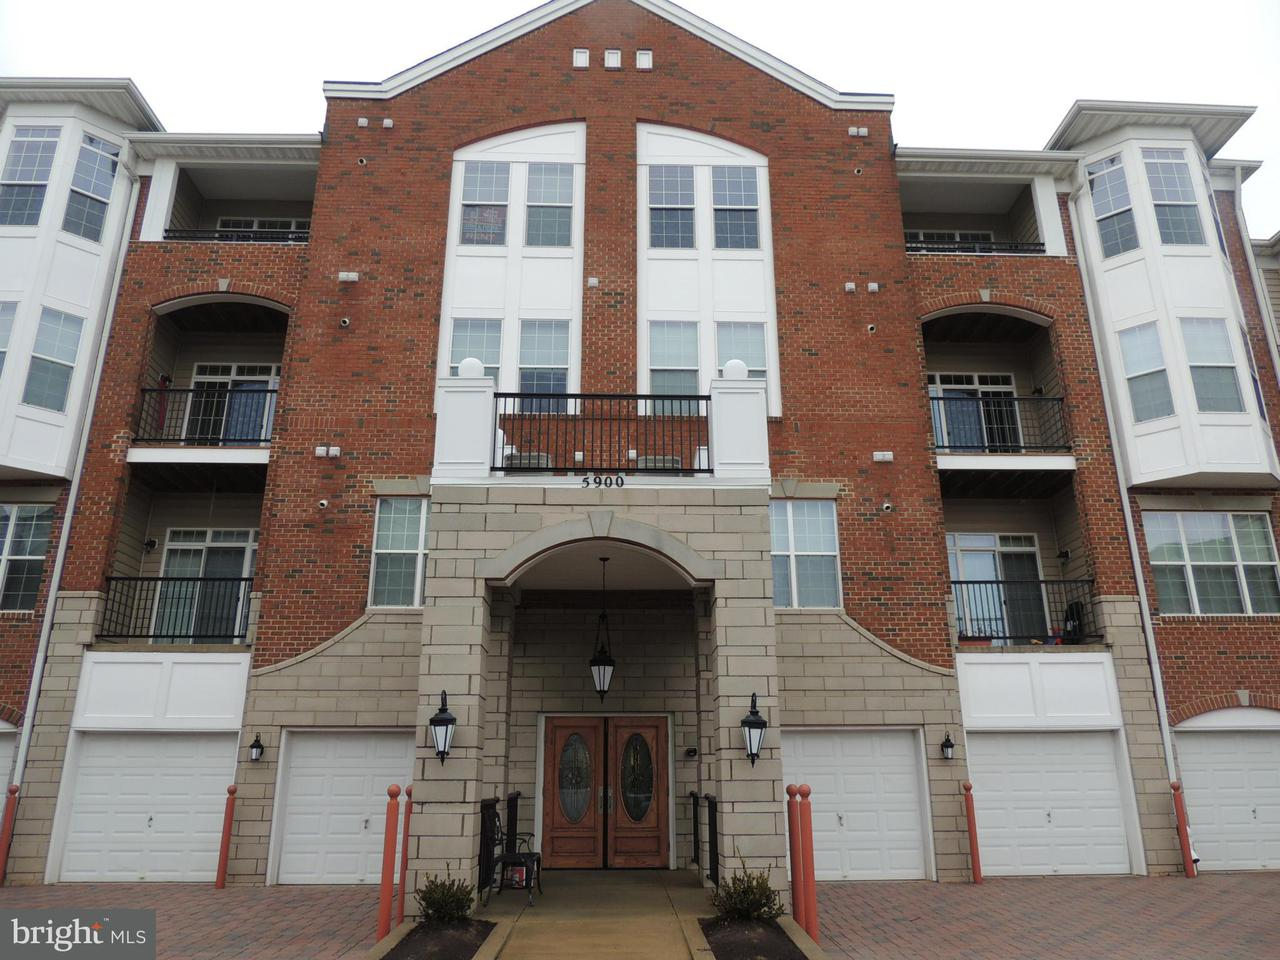 Condominium for Rent at 5900 Great Star Dr #205 Clarksville, Maryland 21029 United States